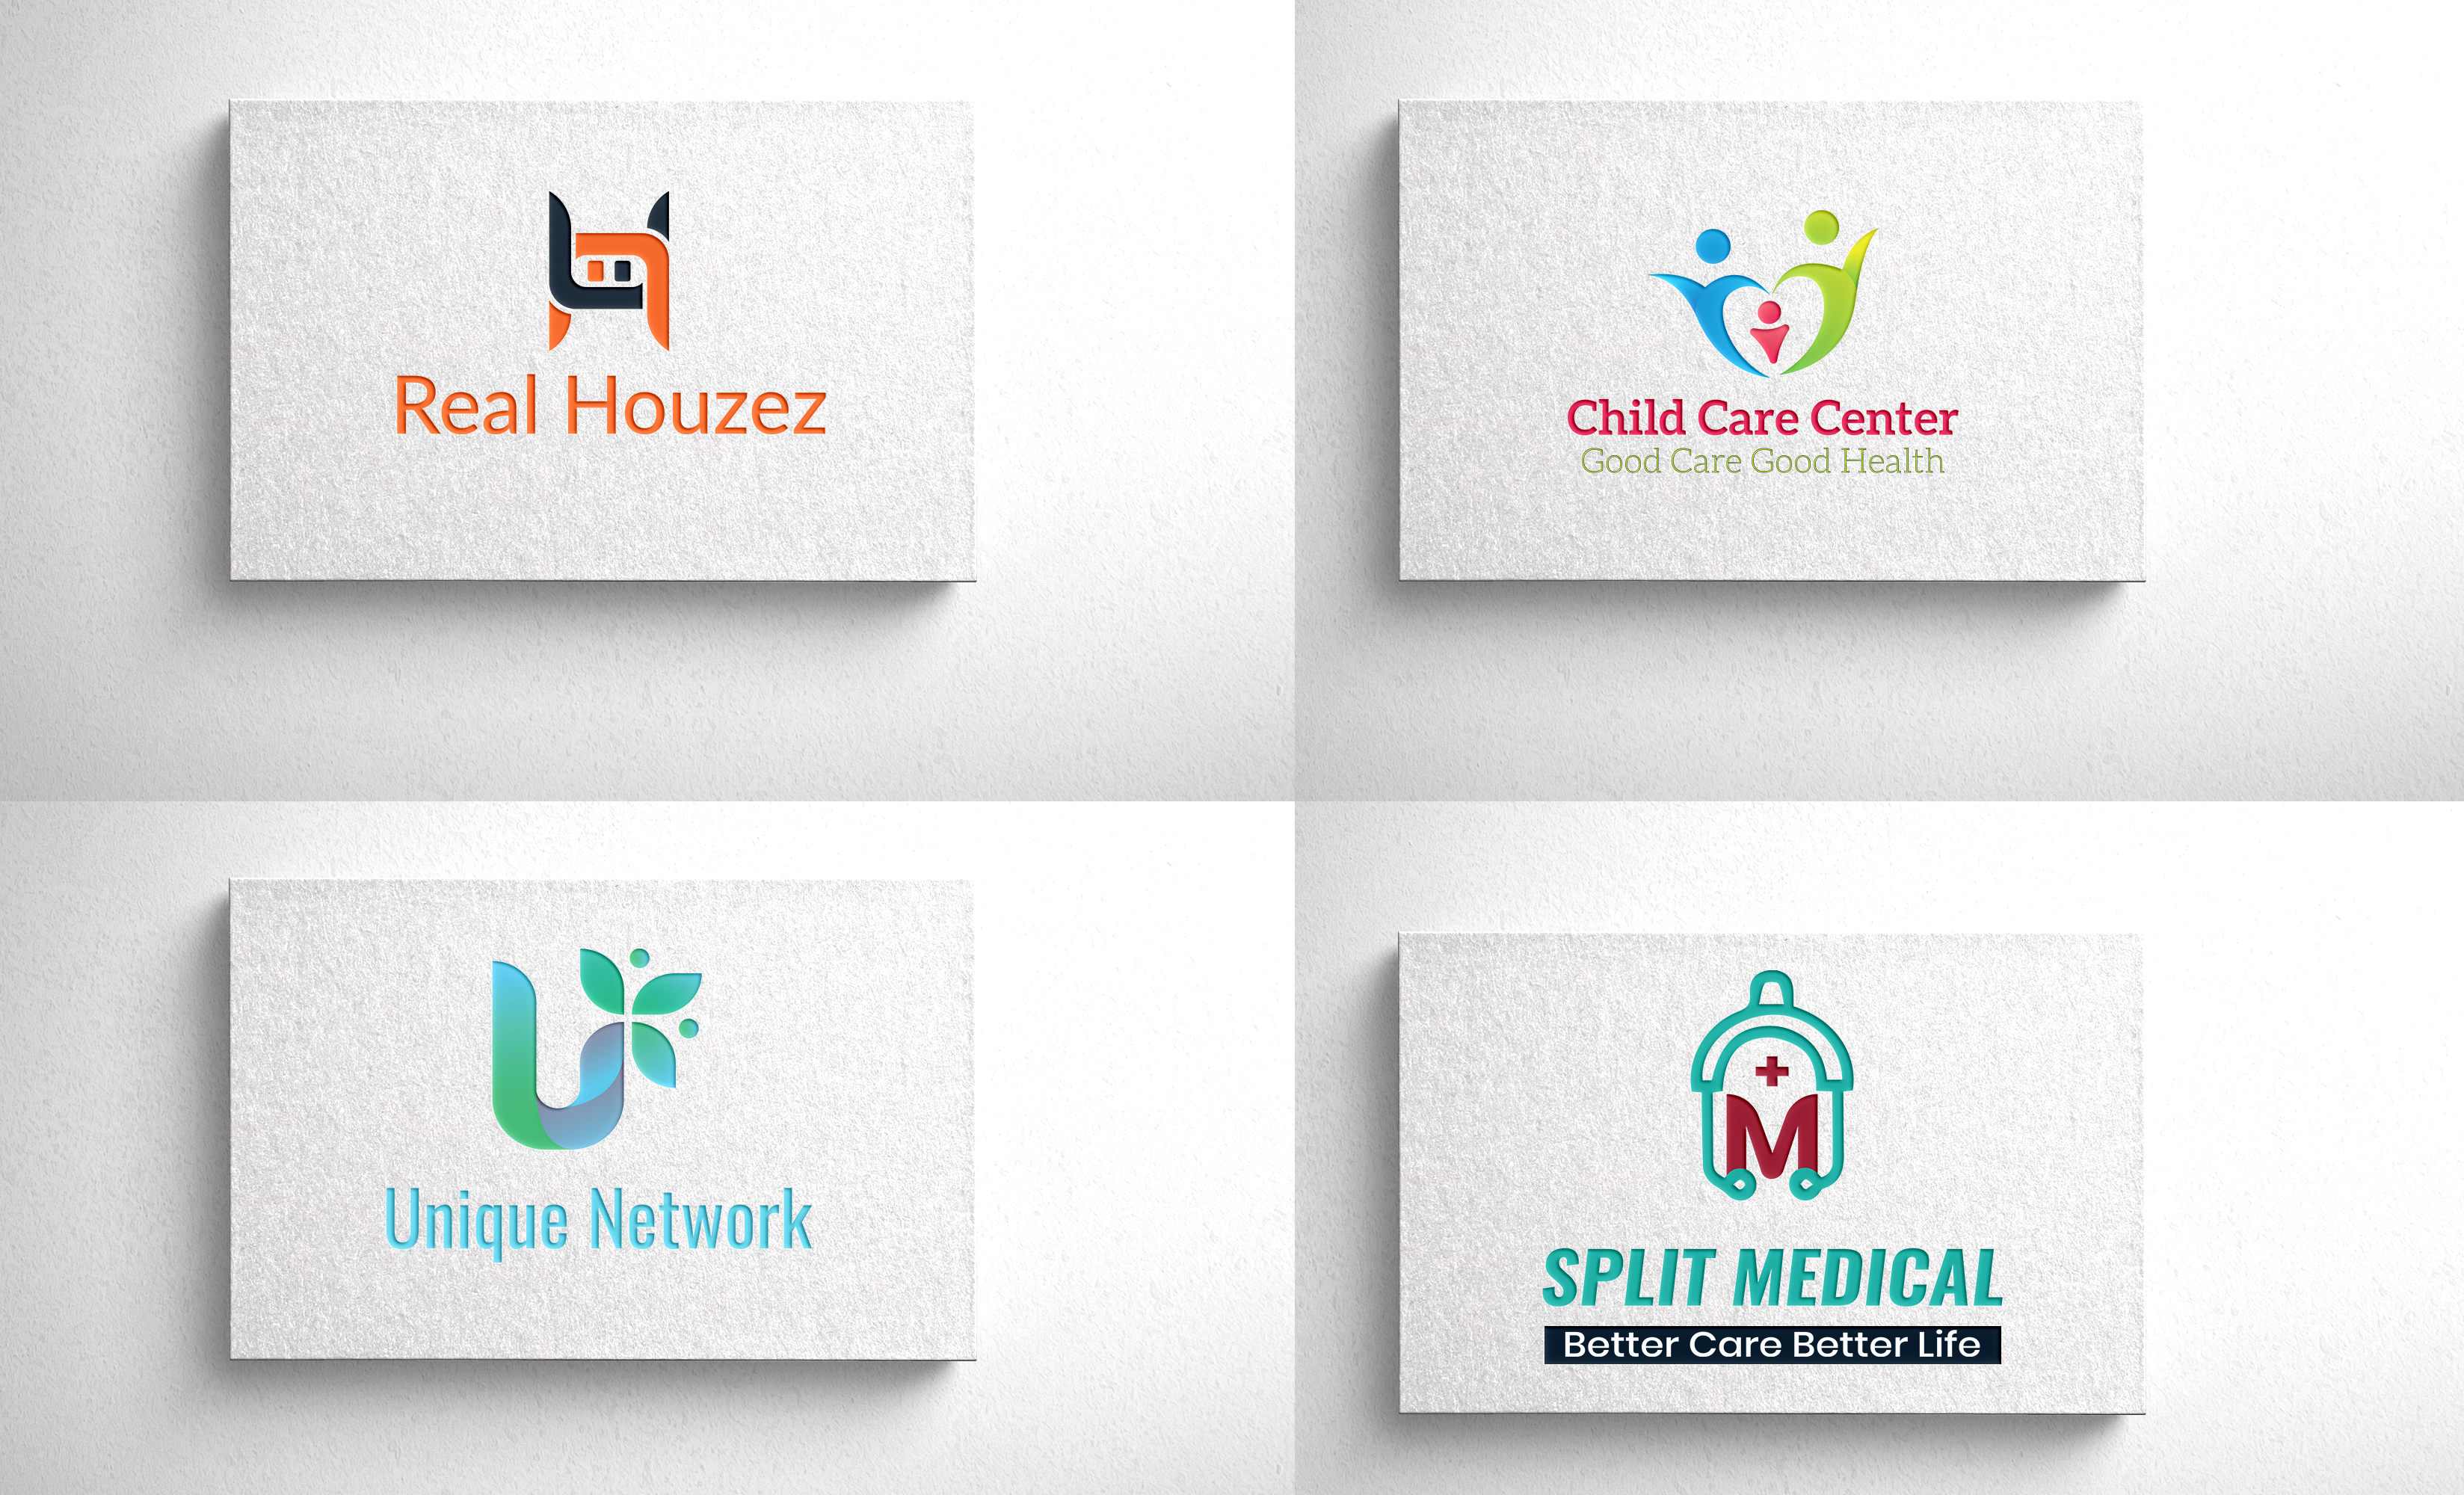 I will design 2 concept minimalist,  real estate,  travel,  restaurant logo for your